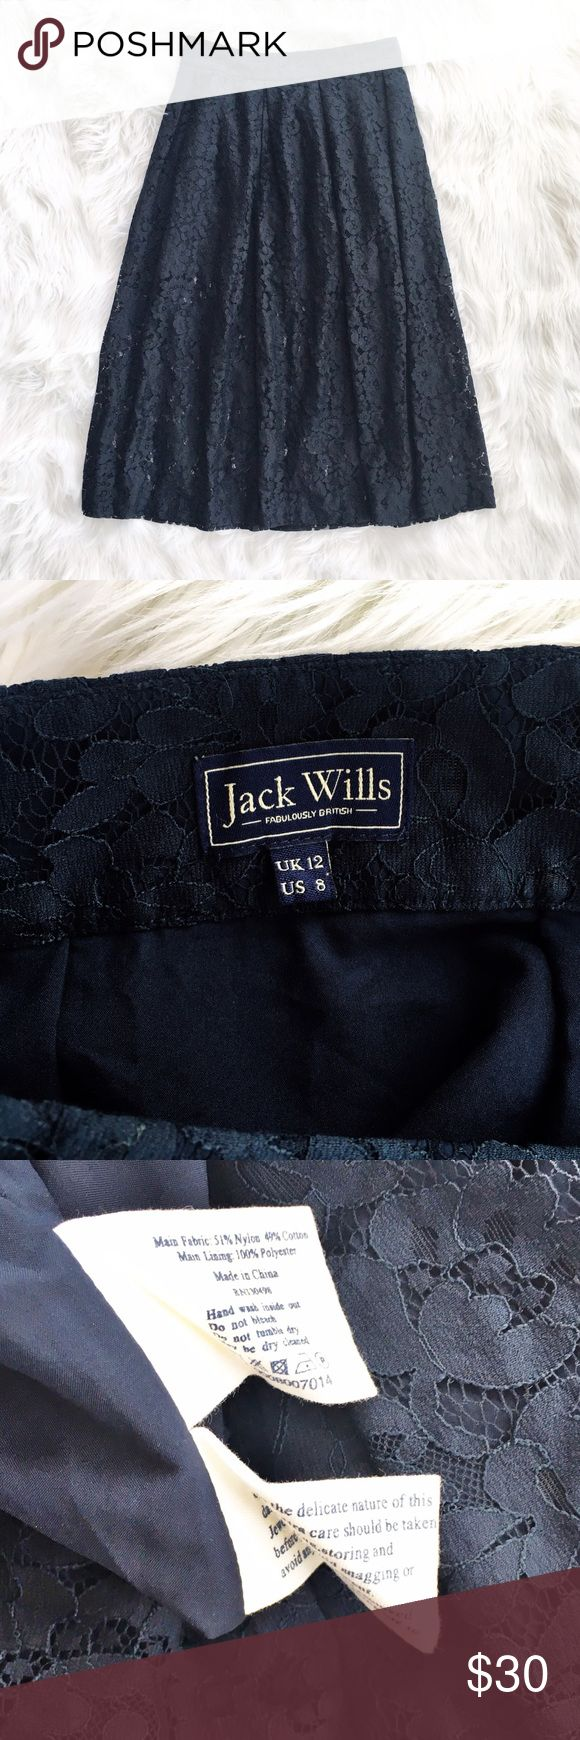 "Jack Wills navy floral lace midi skirt Lovely floral lace midis skirt from Jack Wills, size 8. Lined to the knees the lace is open. Features pockets and concealed side zipper. Flat measurements are waist 15"", hips free, length 31"". Excellent condition. Jack Wills Skirts Midi"